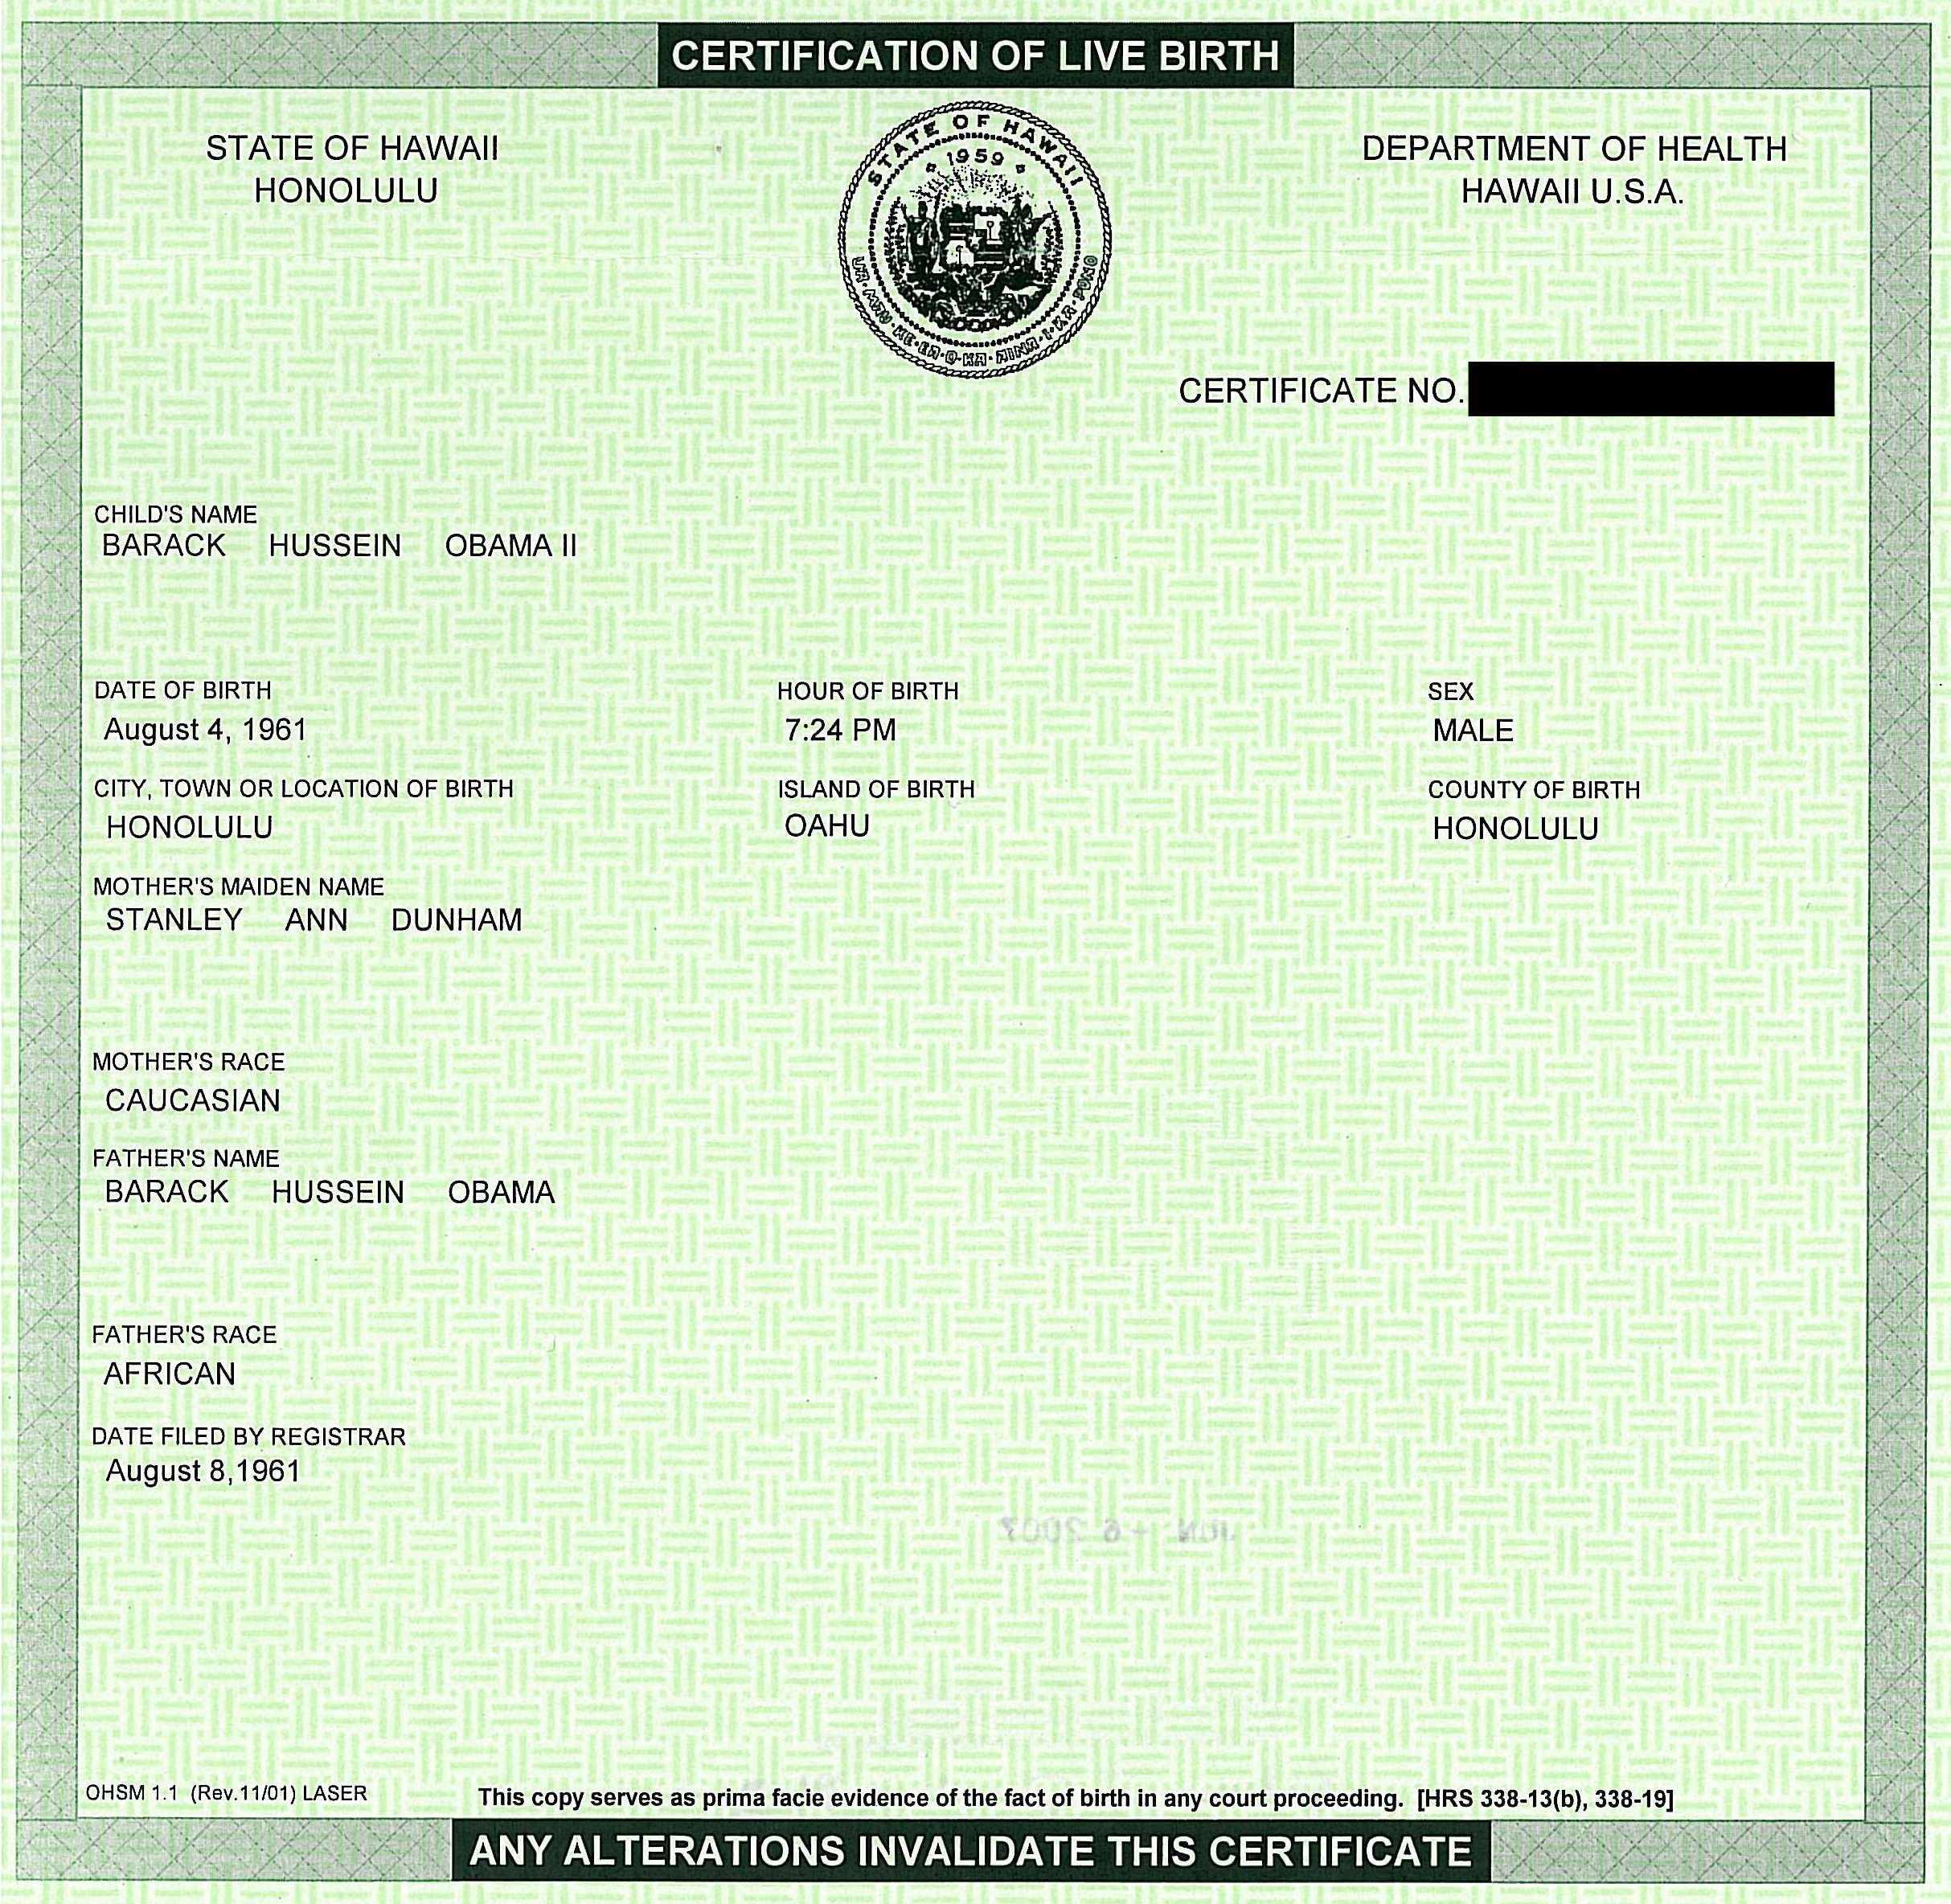 http://images.dailykos.com/images/user/3/BO_Birth_Certificate.jpg